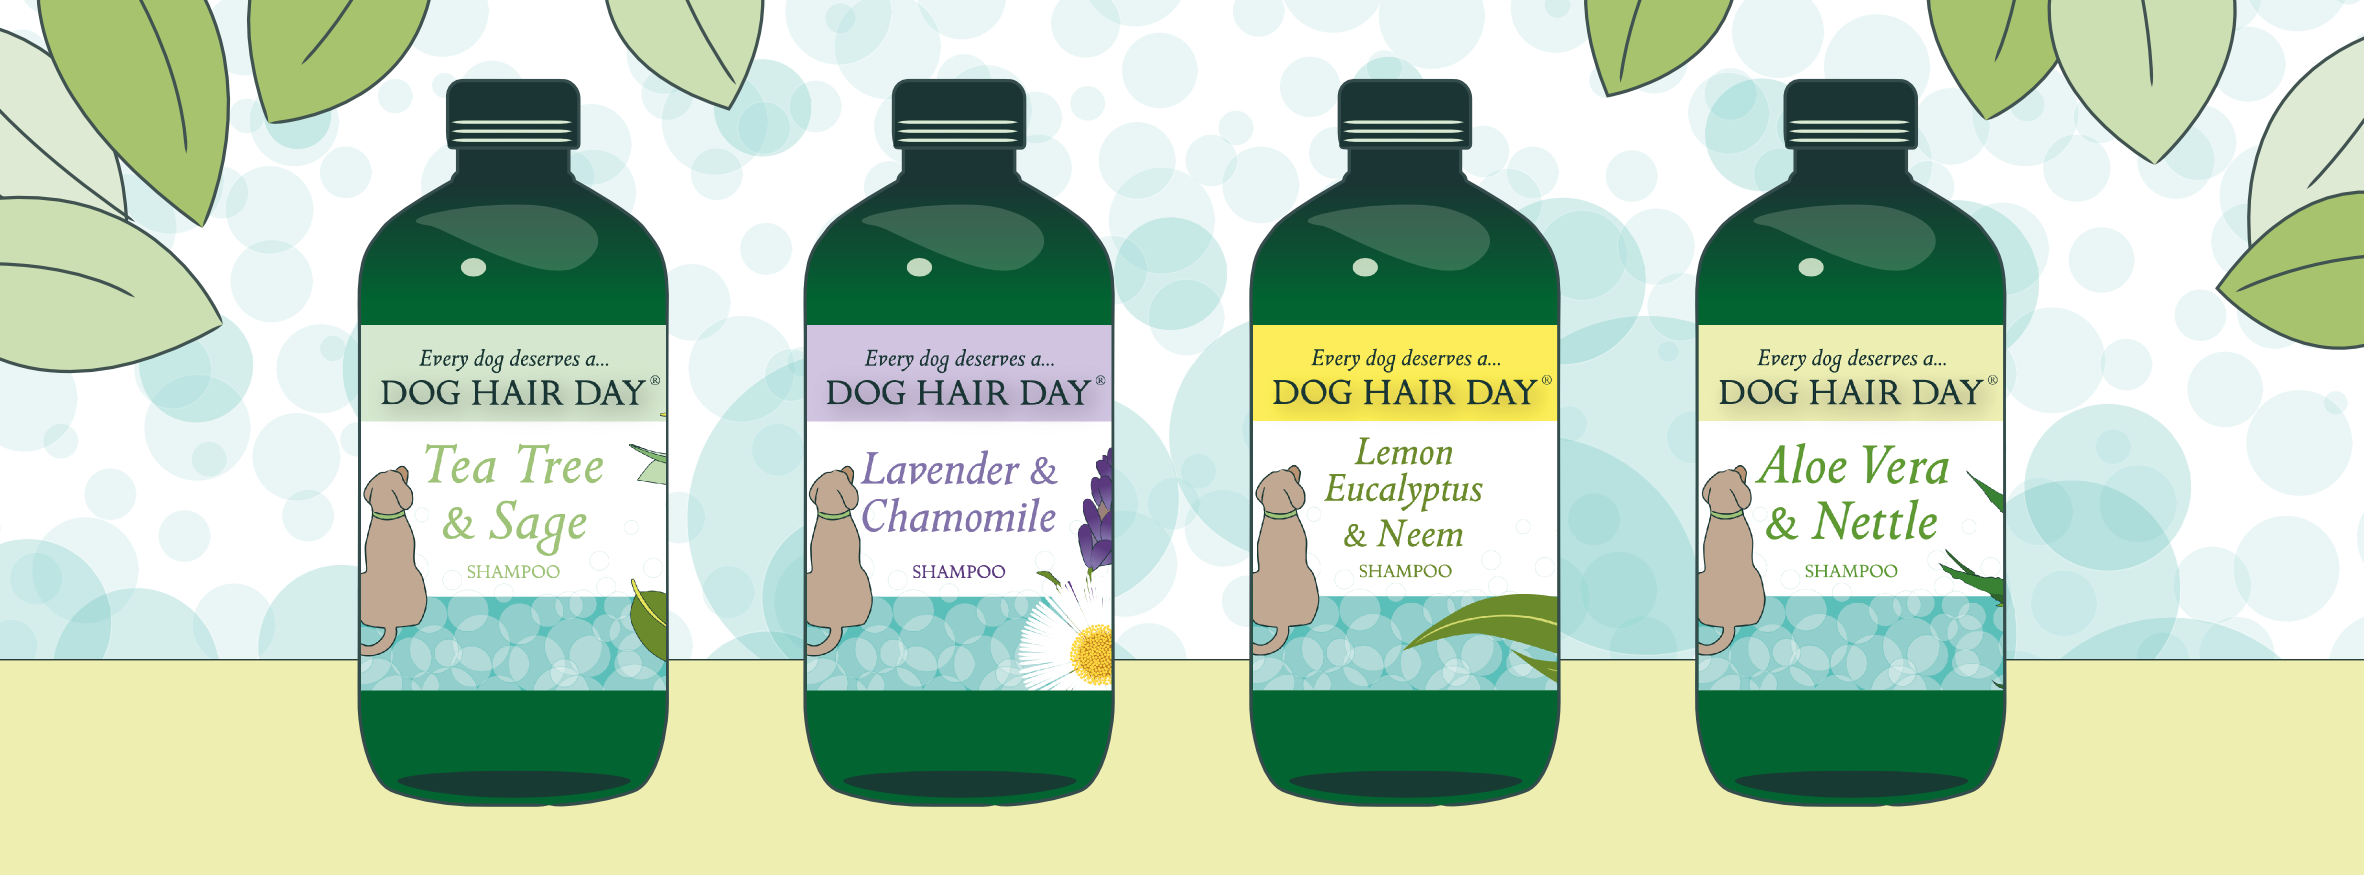 Aloe Vera & Nettle, Lavender & Chamomile, Tea Tree & Sage Dog Hair Day shampoos